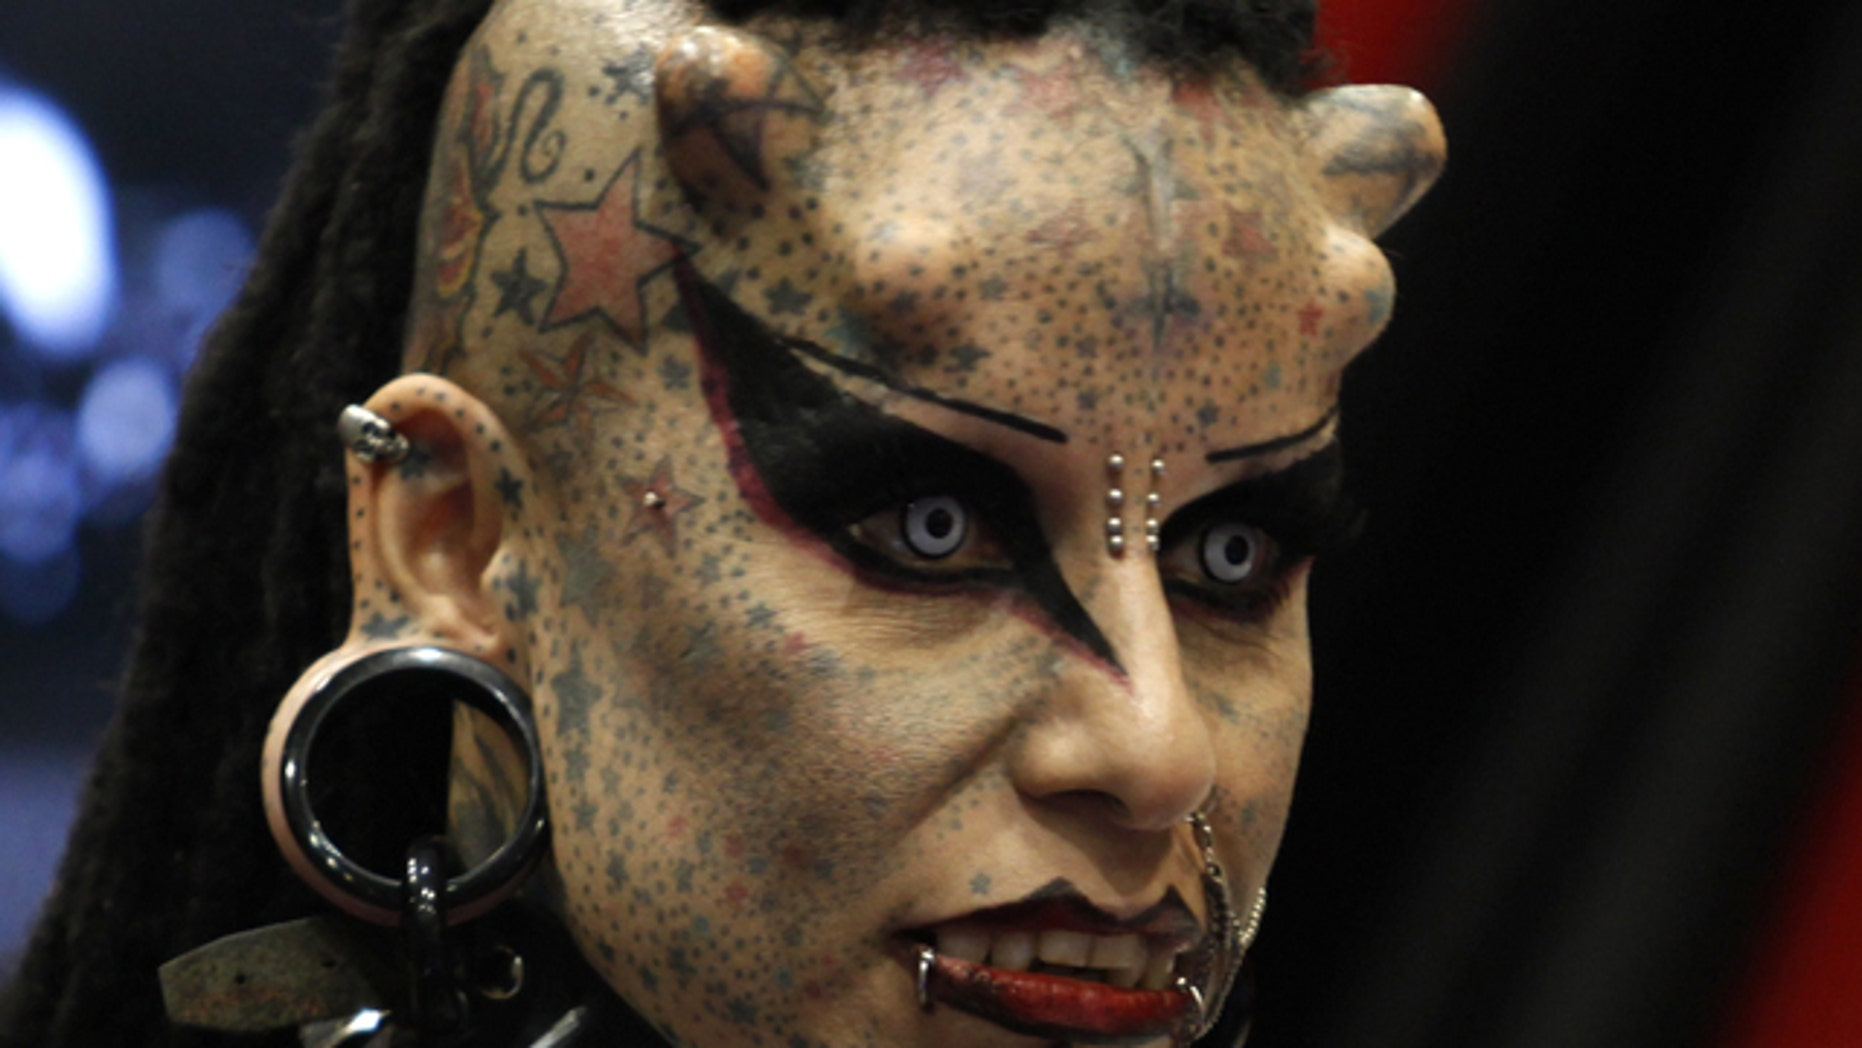 """Mexican tattoo artist Maria Jose Cristerna, known as 'Mujer Vampiro' (Vampire Woman), attends a photo opportunity during the """"Expo Tatuaje"""" international tattoo expo in Monterrey April 3, 2011."""